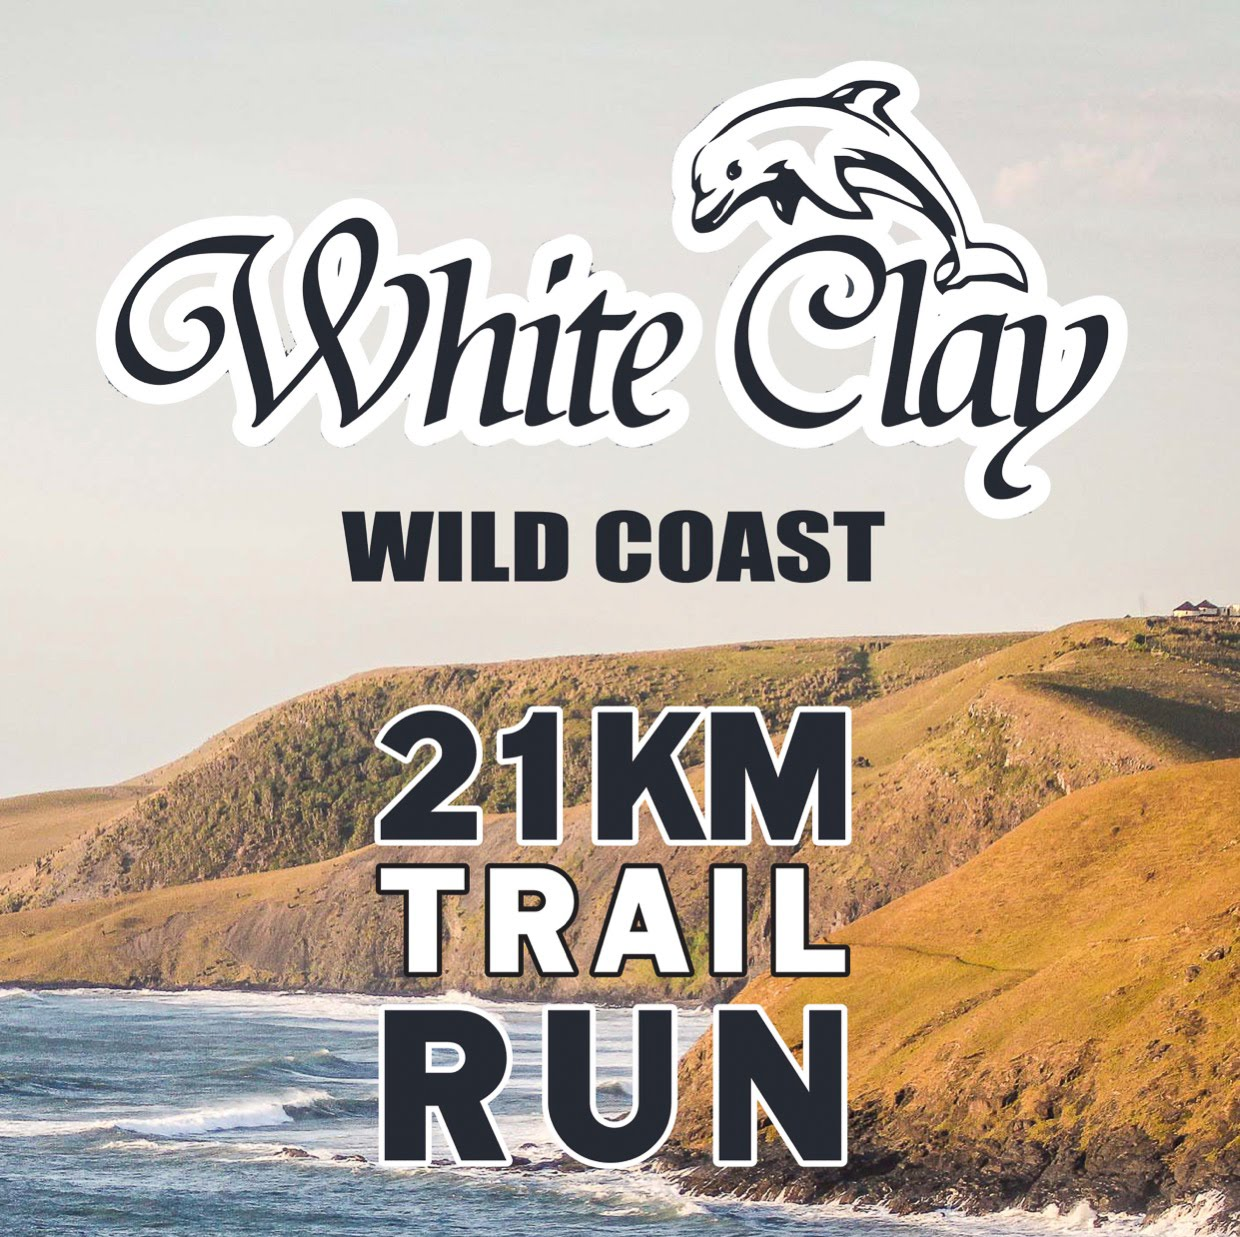 White Clay Trail Run